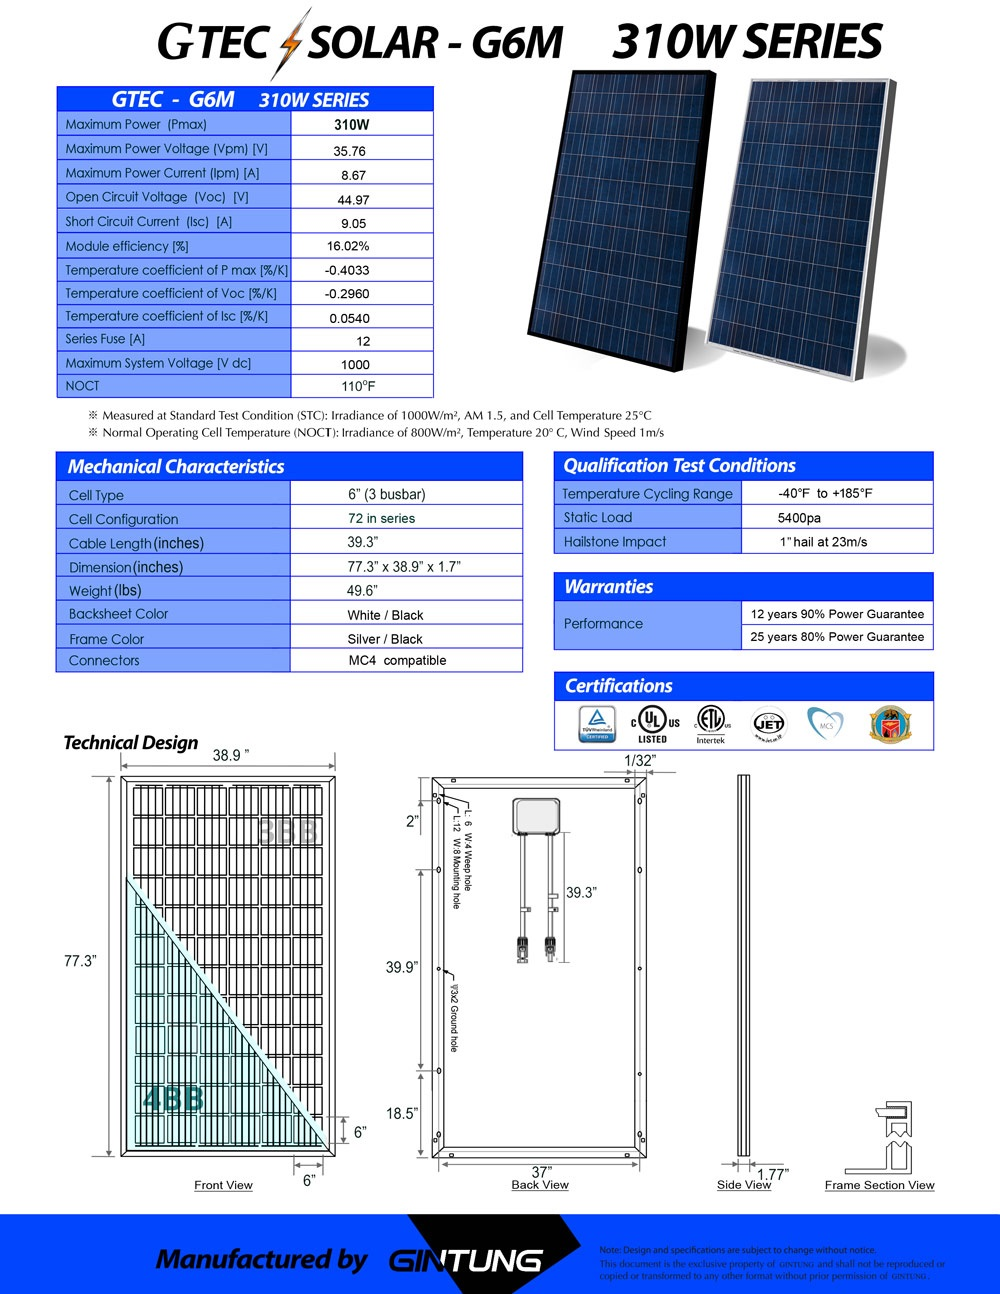 Solar Panels Manufactured By Gtec Tatung Usa Electrical Technology Series Connection Of Panel And Parallel